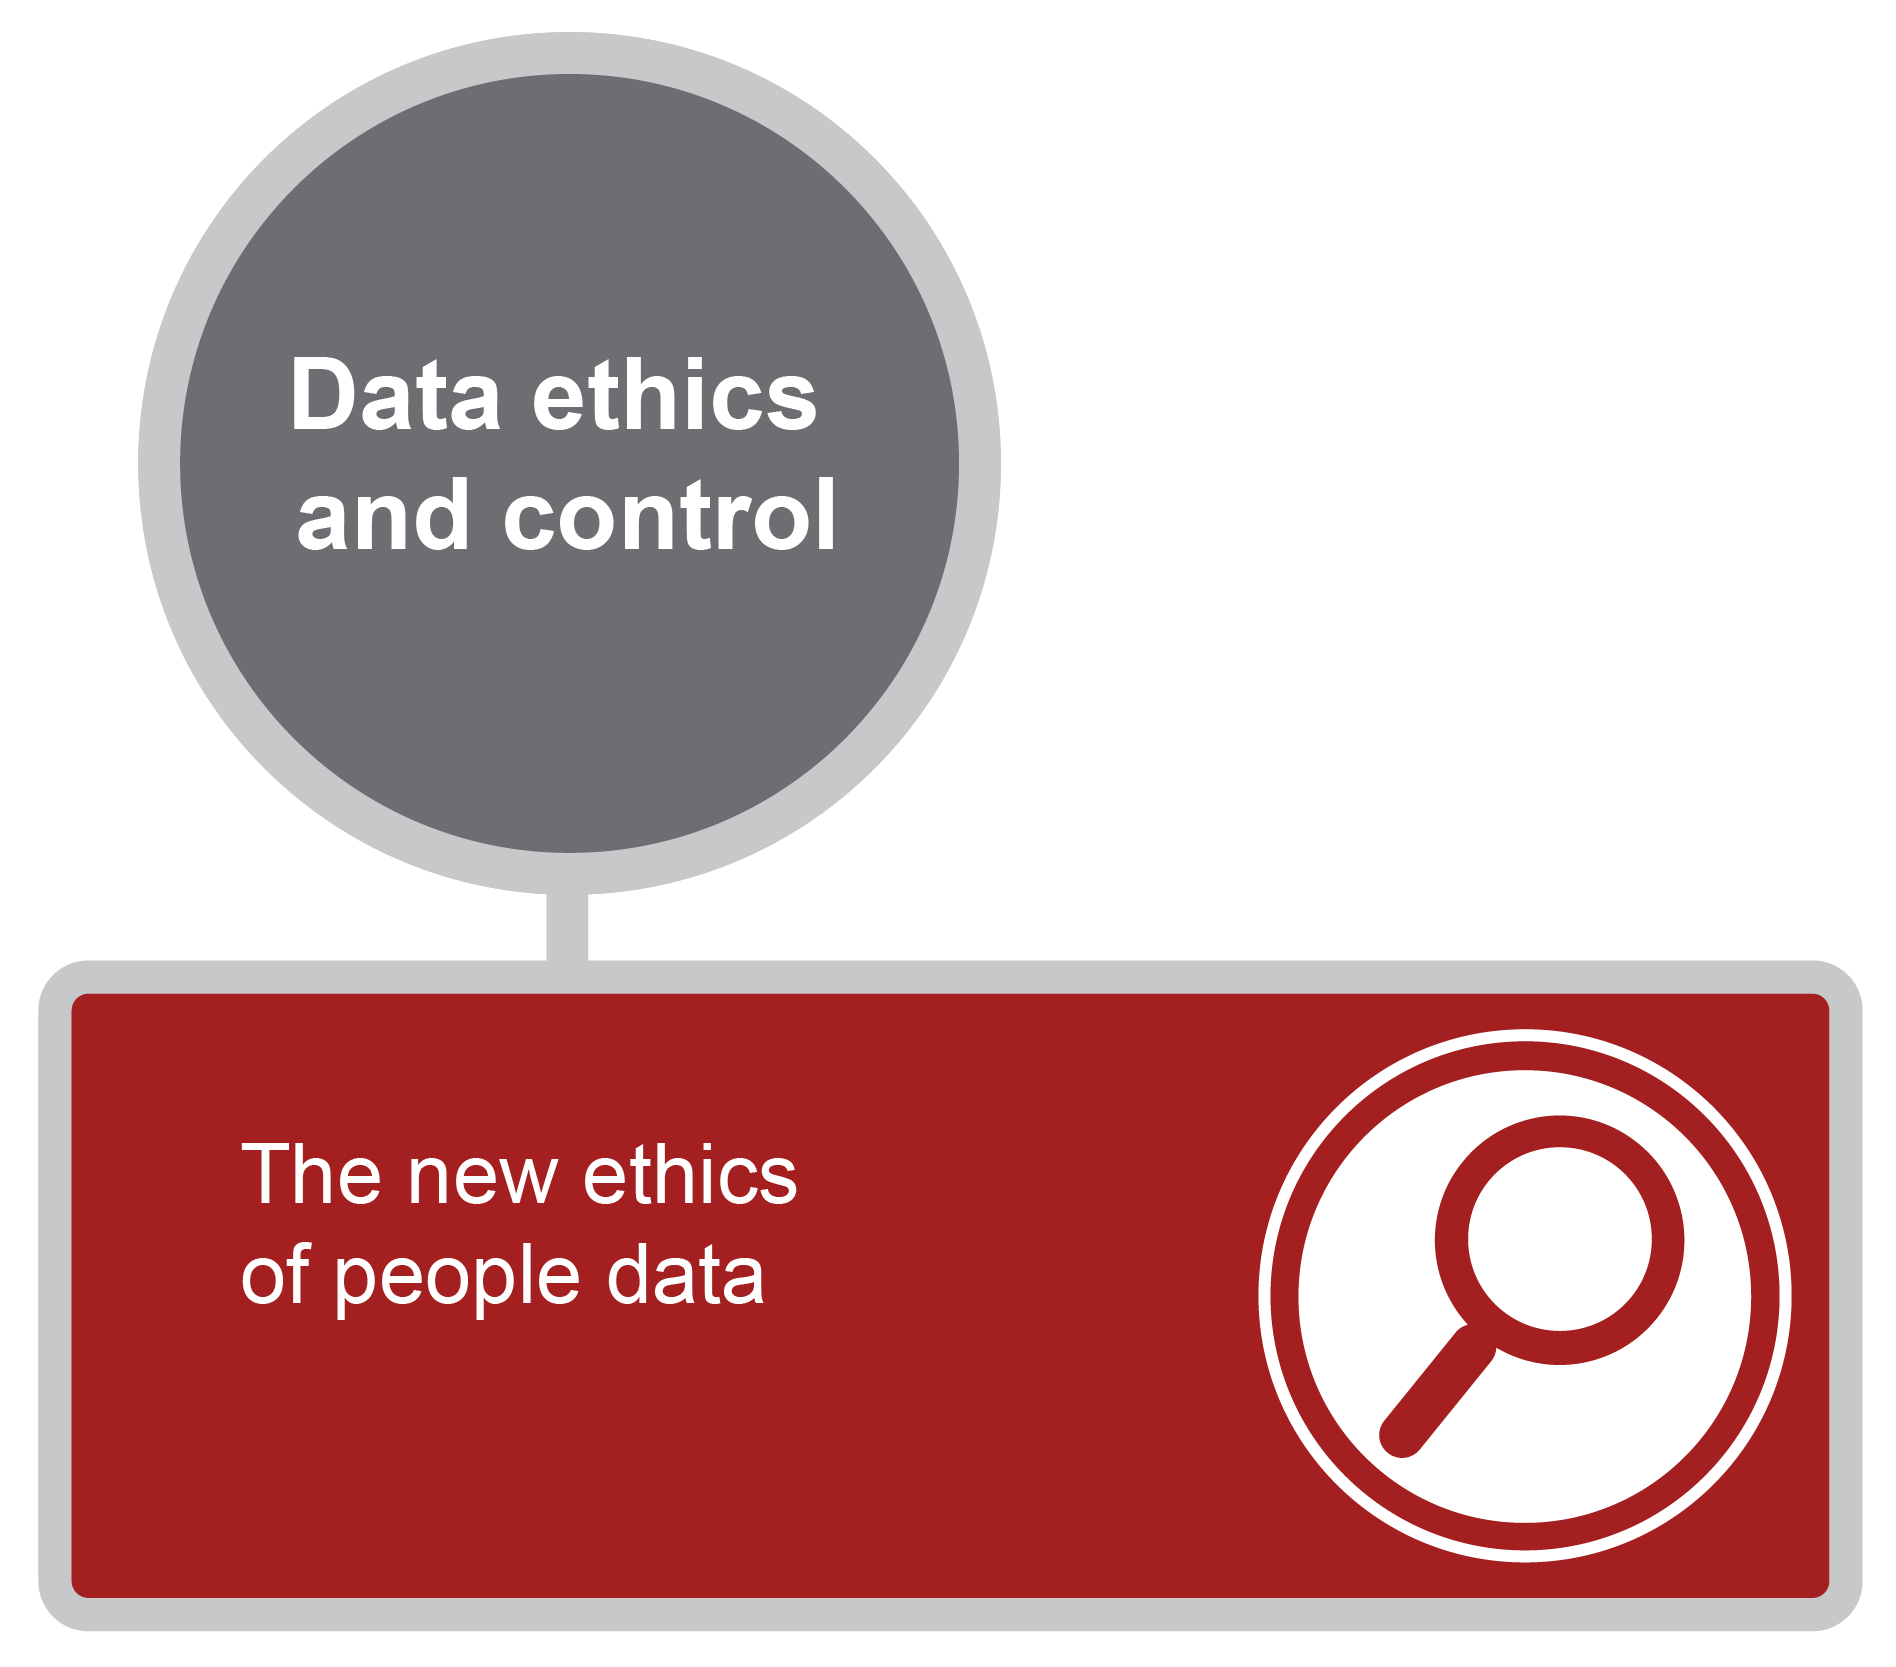 The new ethics of people data graphic